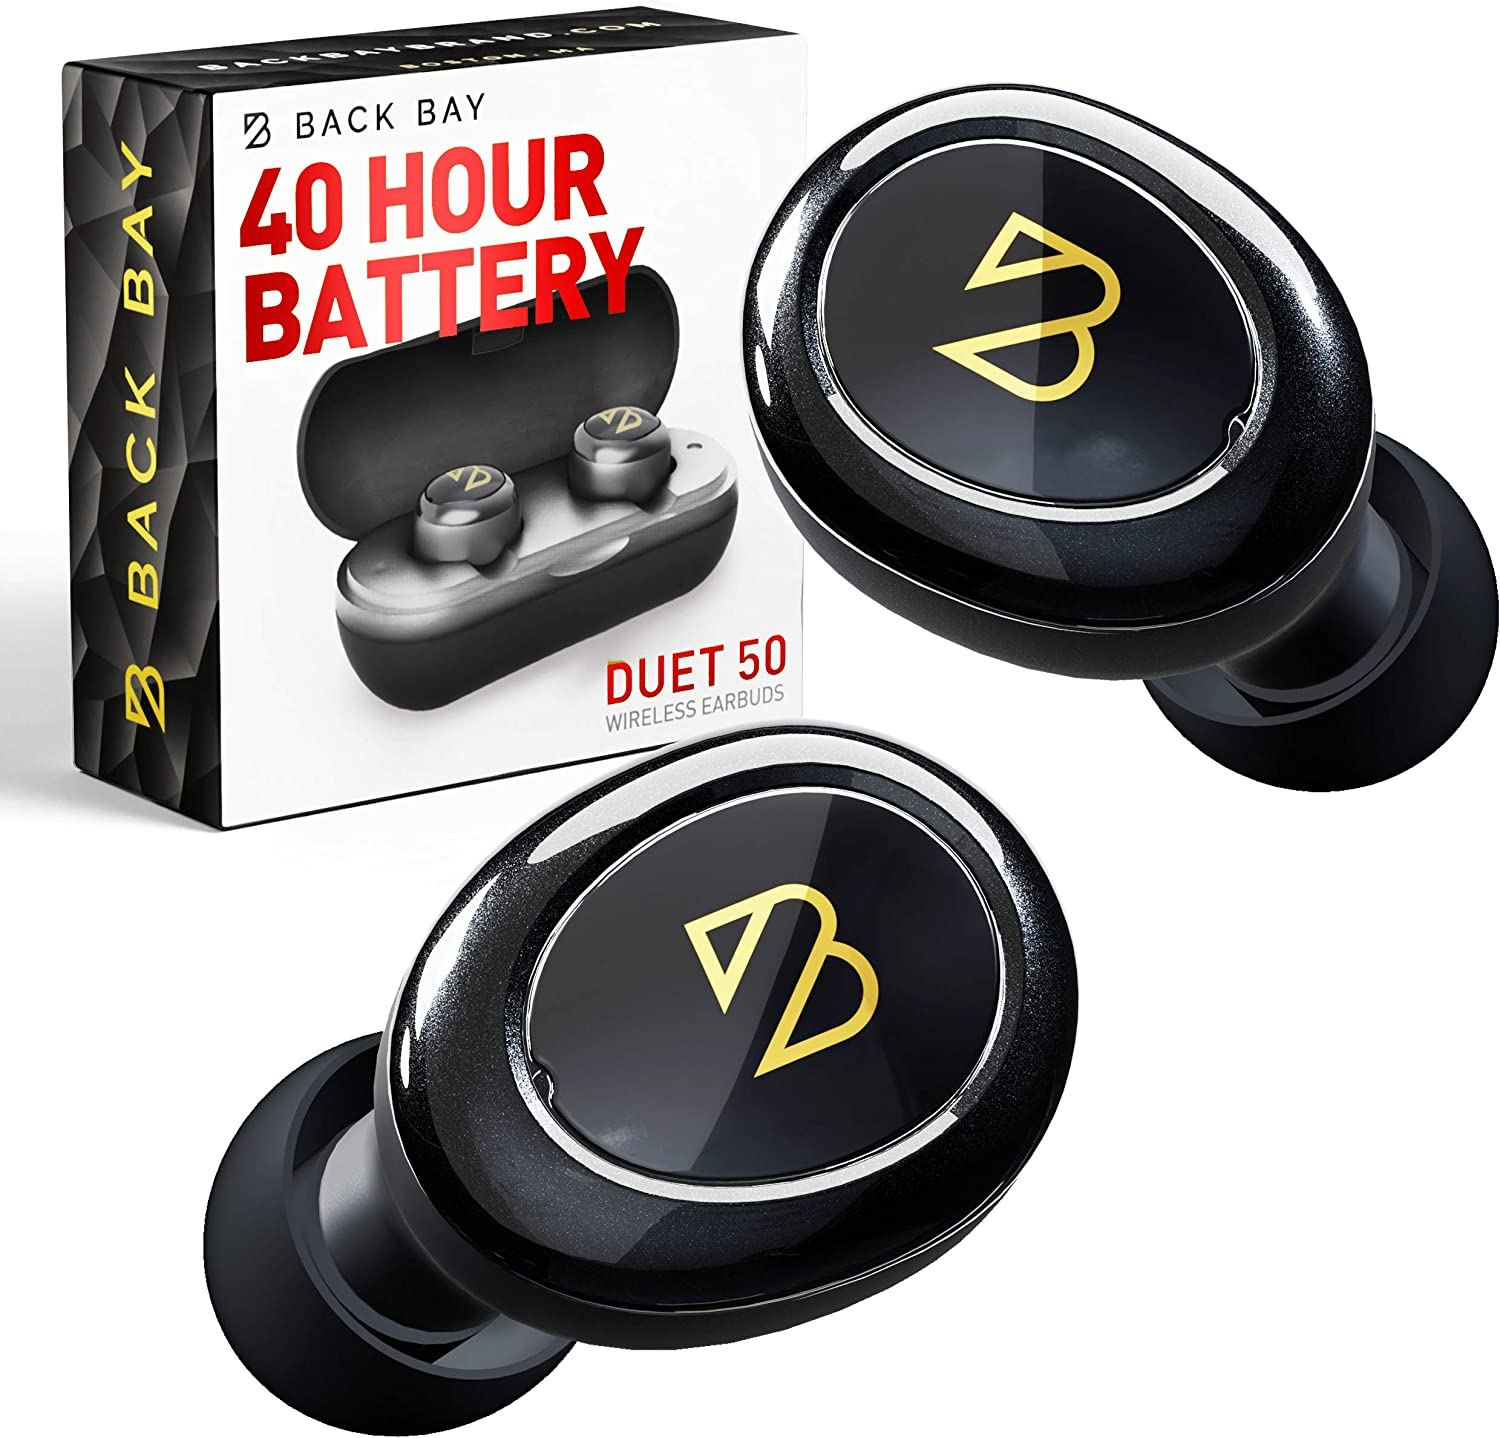 Duet 50 True Wireless Earbuds Bluetooth 5.0 [Featured in Rolling Stone, Forbes] 40 Hour Long Battery Life with Charging Case. Sweatproof Truly Wireless APTX Headphones for Running. TWS Microphone